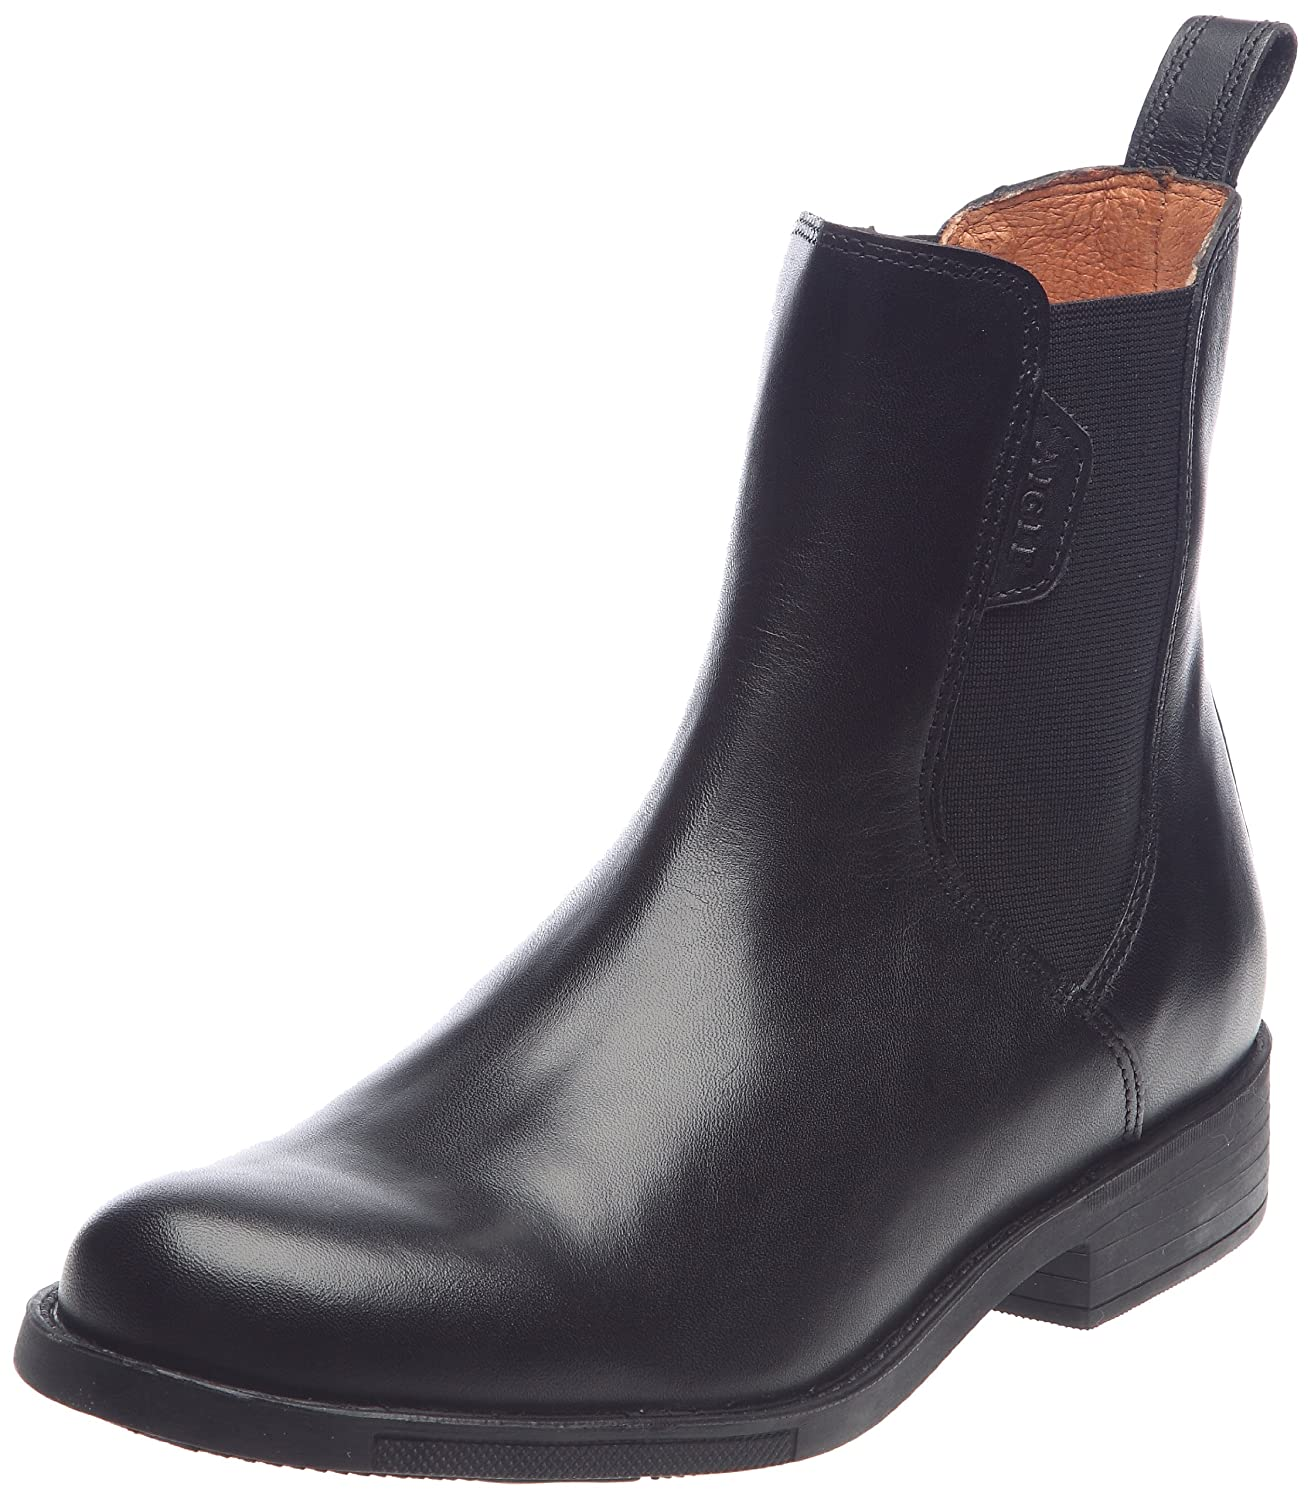 Aigle - Orzac - Chaussure d'equitation - Homme